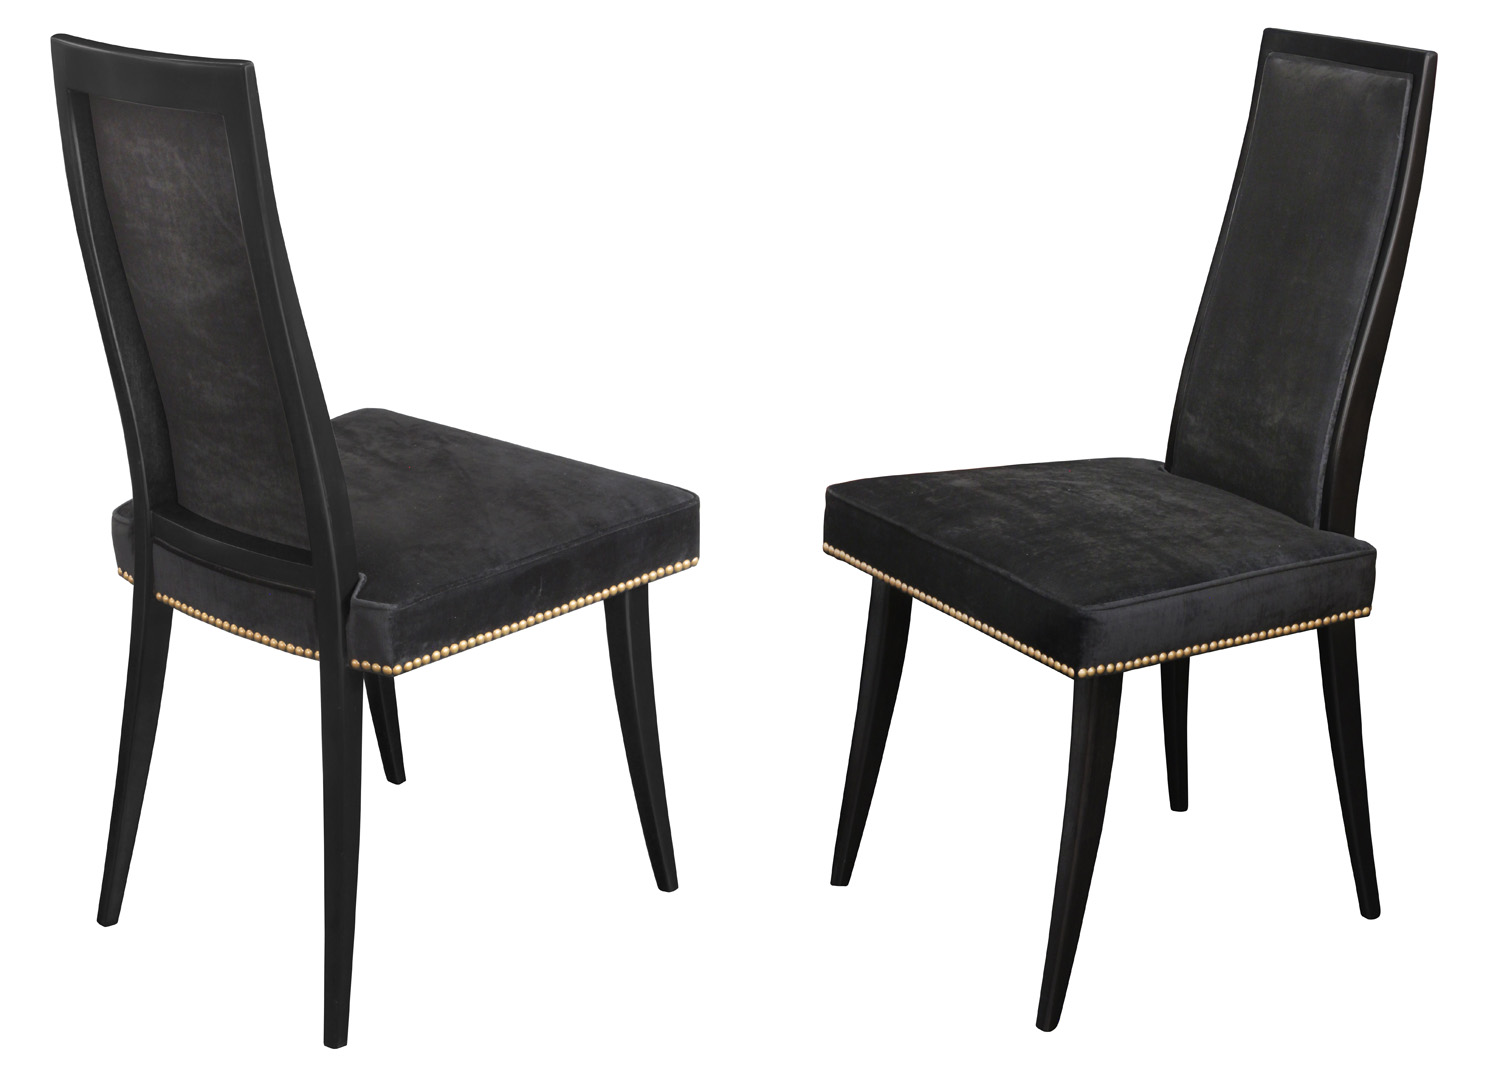 Probber 180 set 8 Classic 2 arms diningchairs150 detail2 hires.jpg